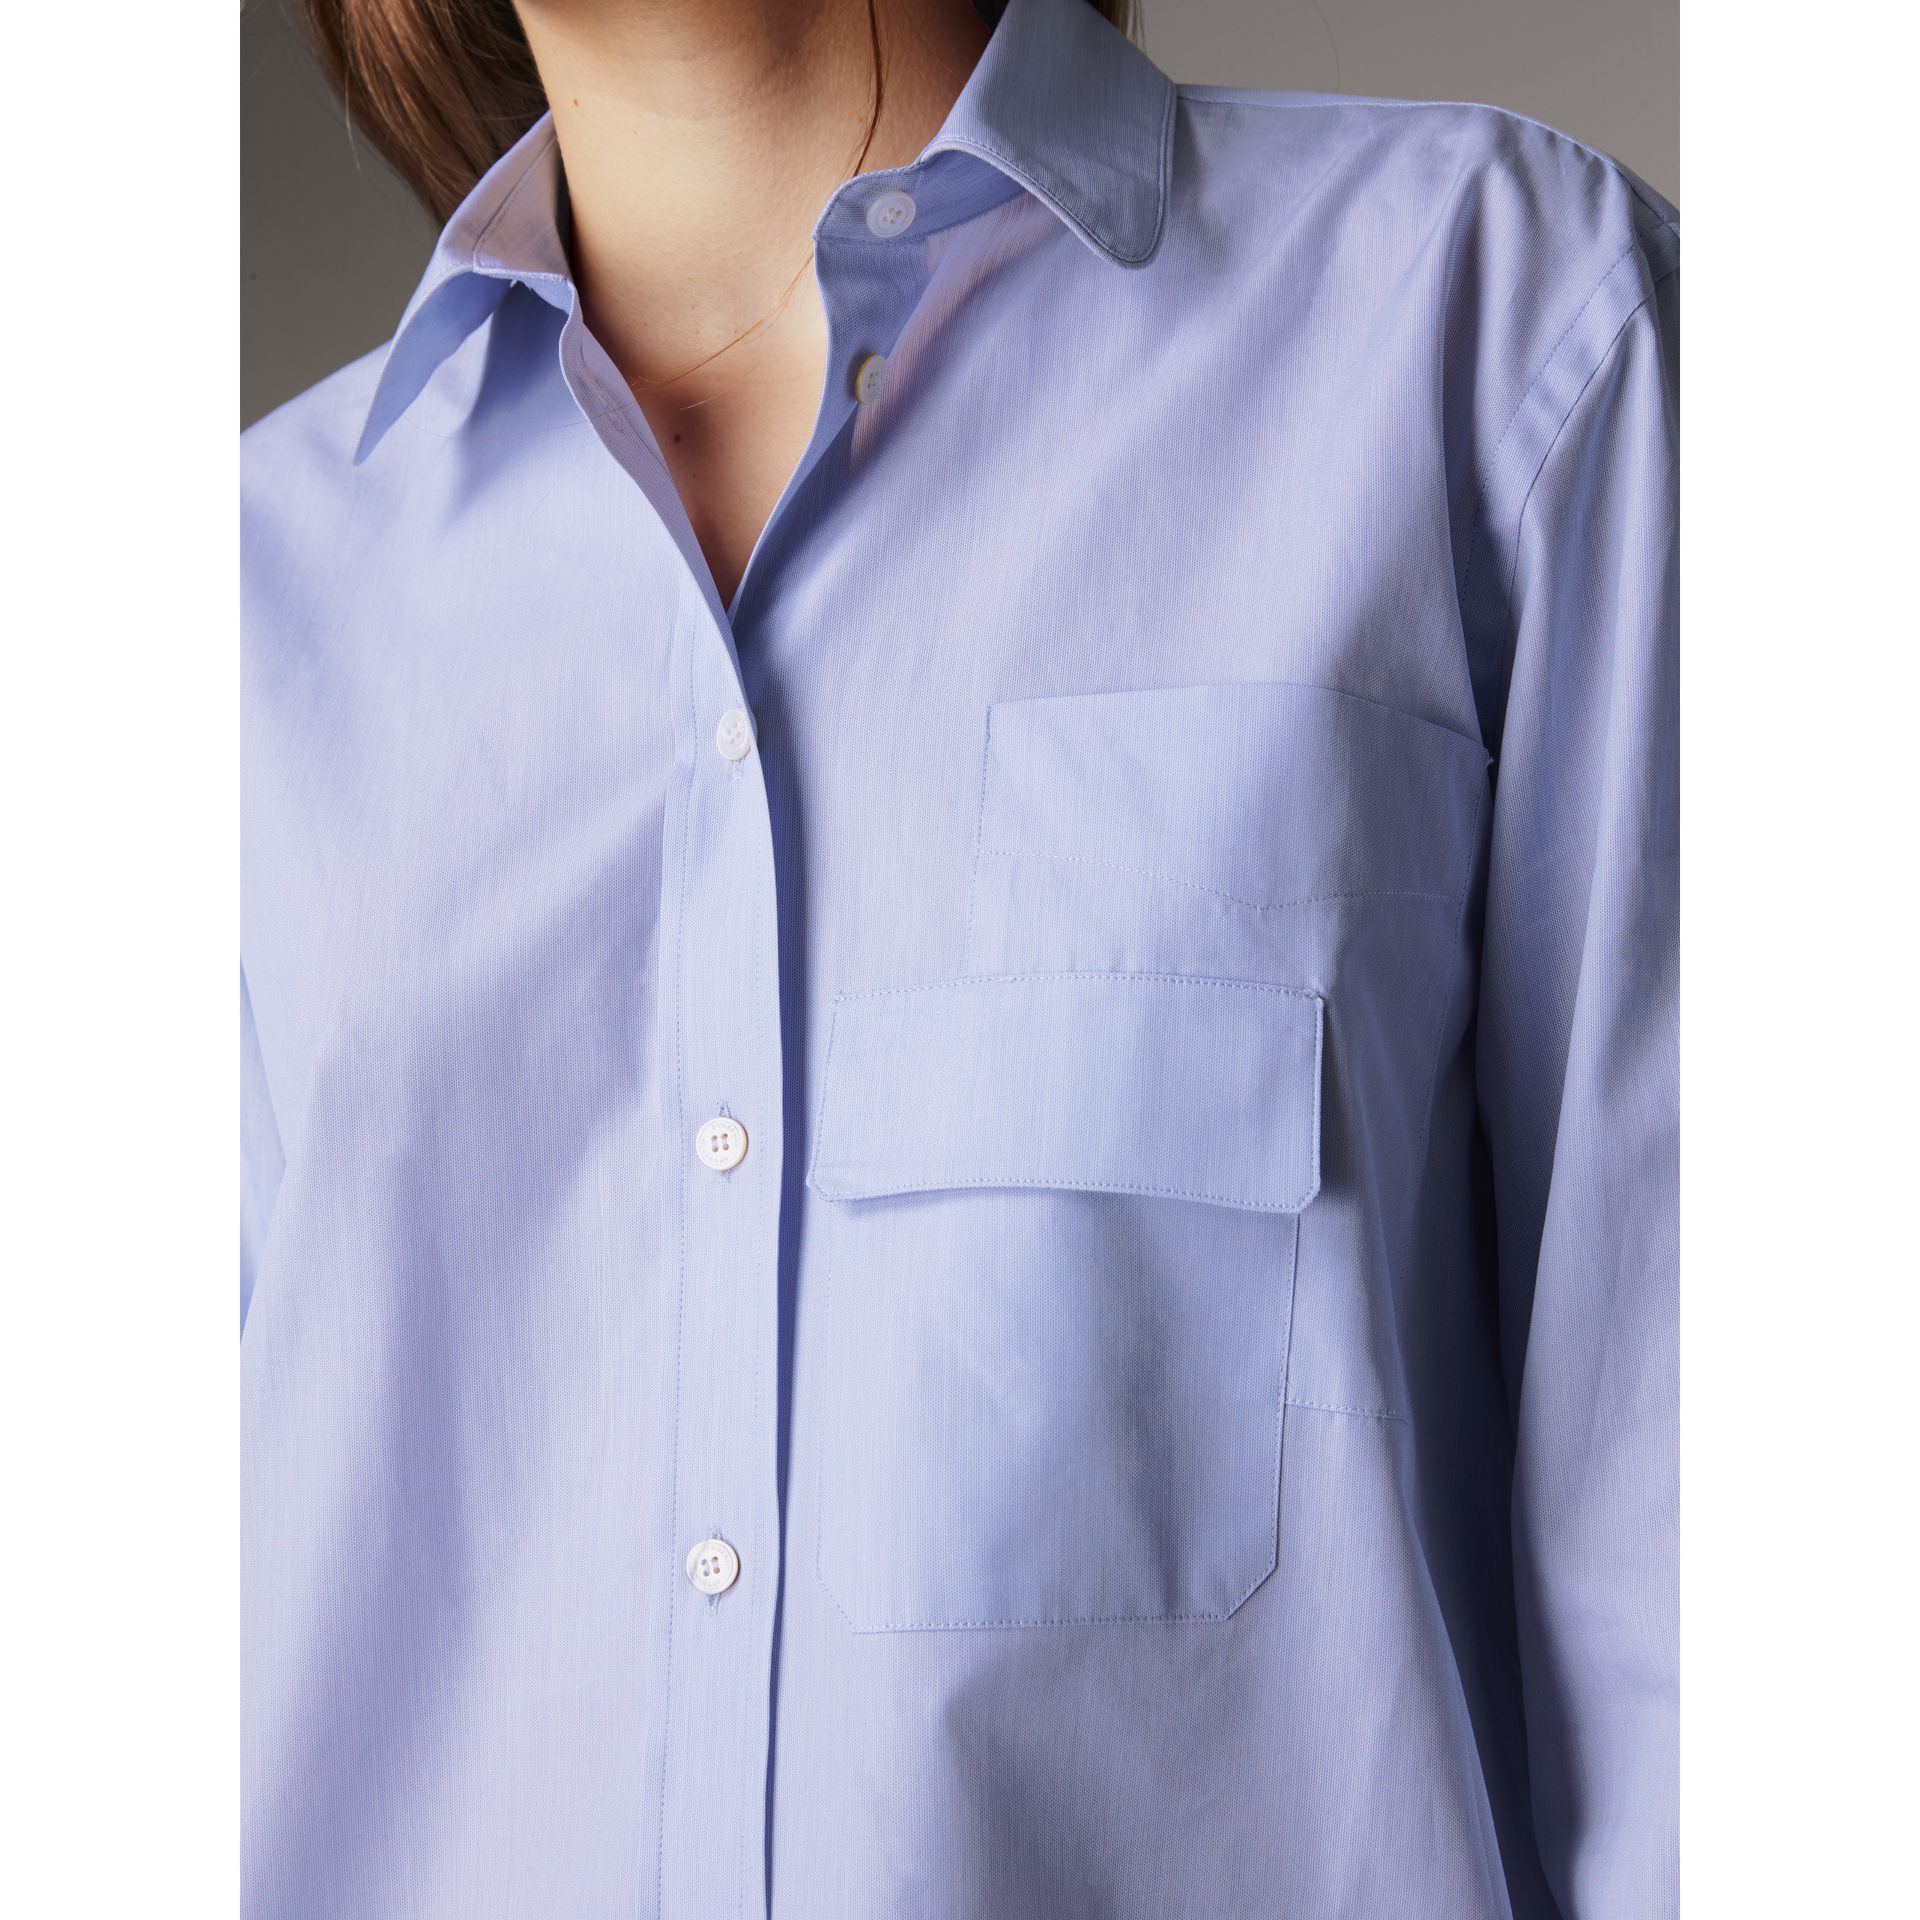 Double Pocket Cotton Oversize Shirt in Pale Blue - Women | Burberry Singapore - gallery image 2